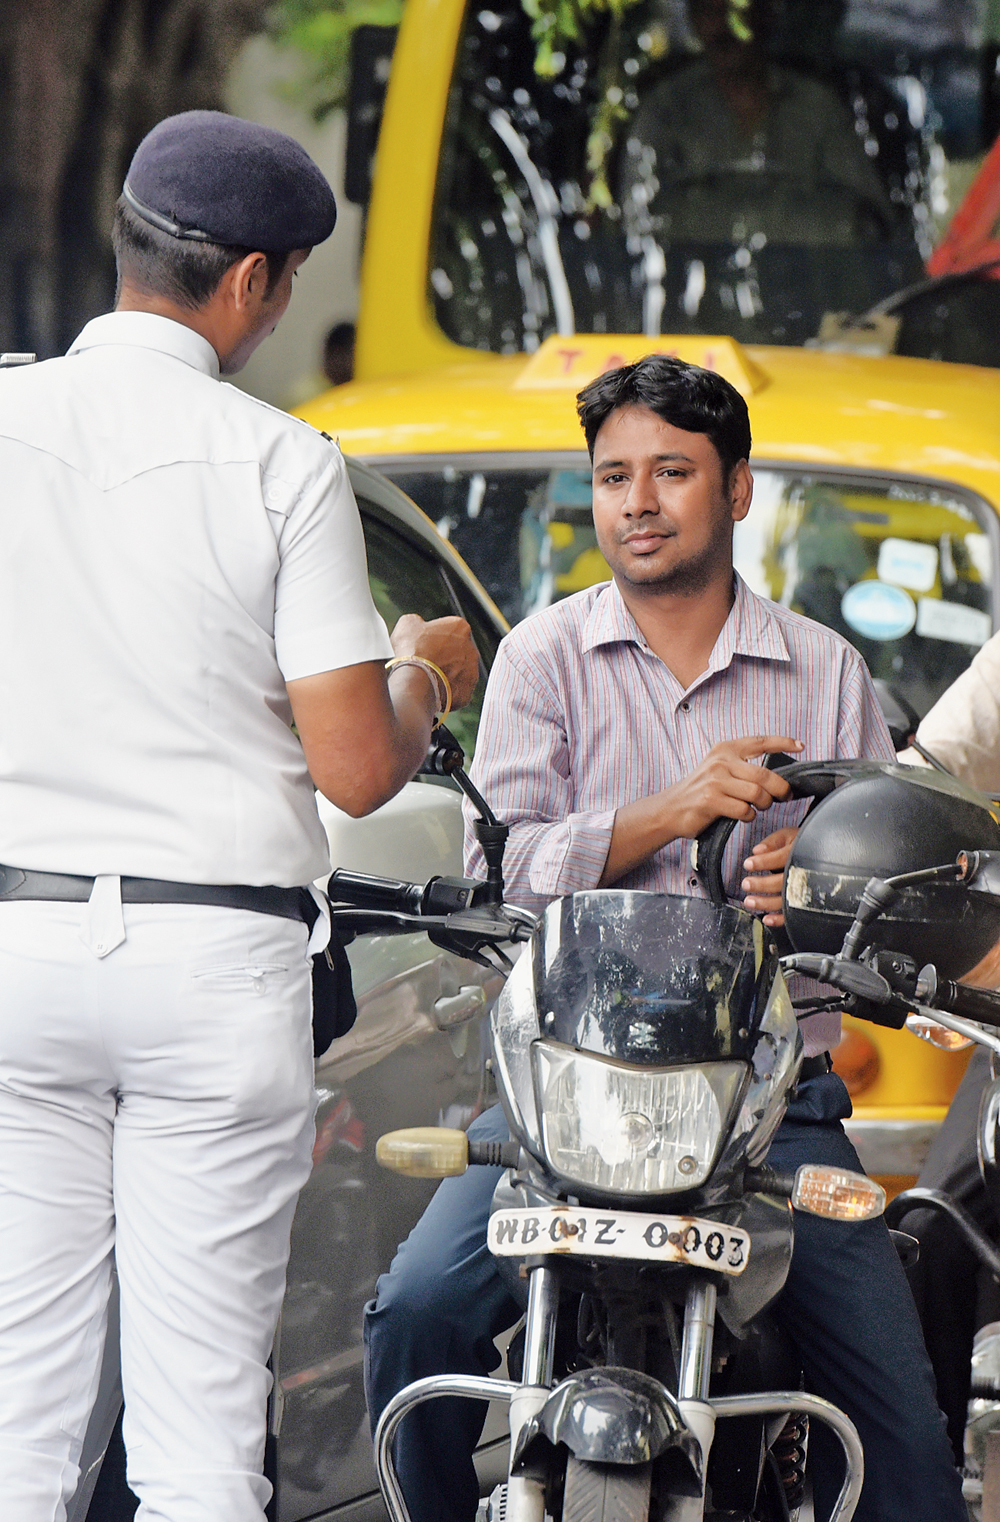 A policeman asks a biker to wear his helmet that was hanging from the handle of his motorcycle on Mayfair Road in Ballygunge on Friday